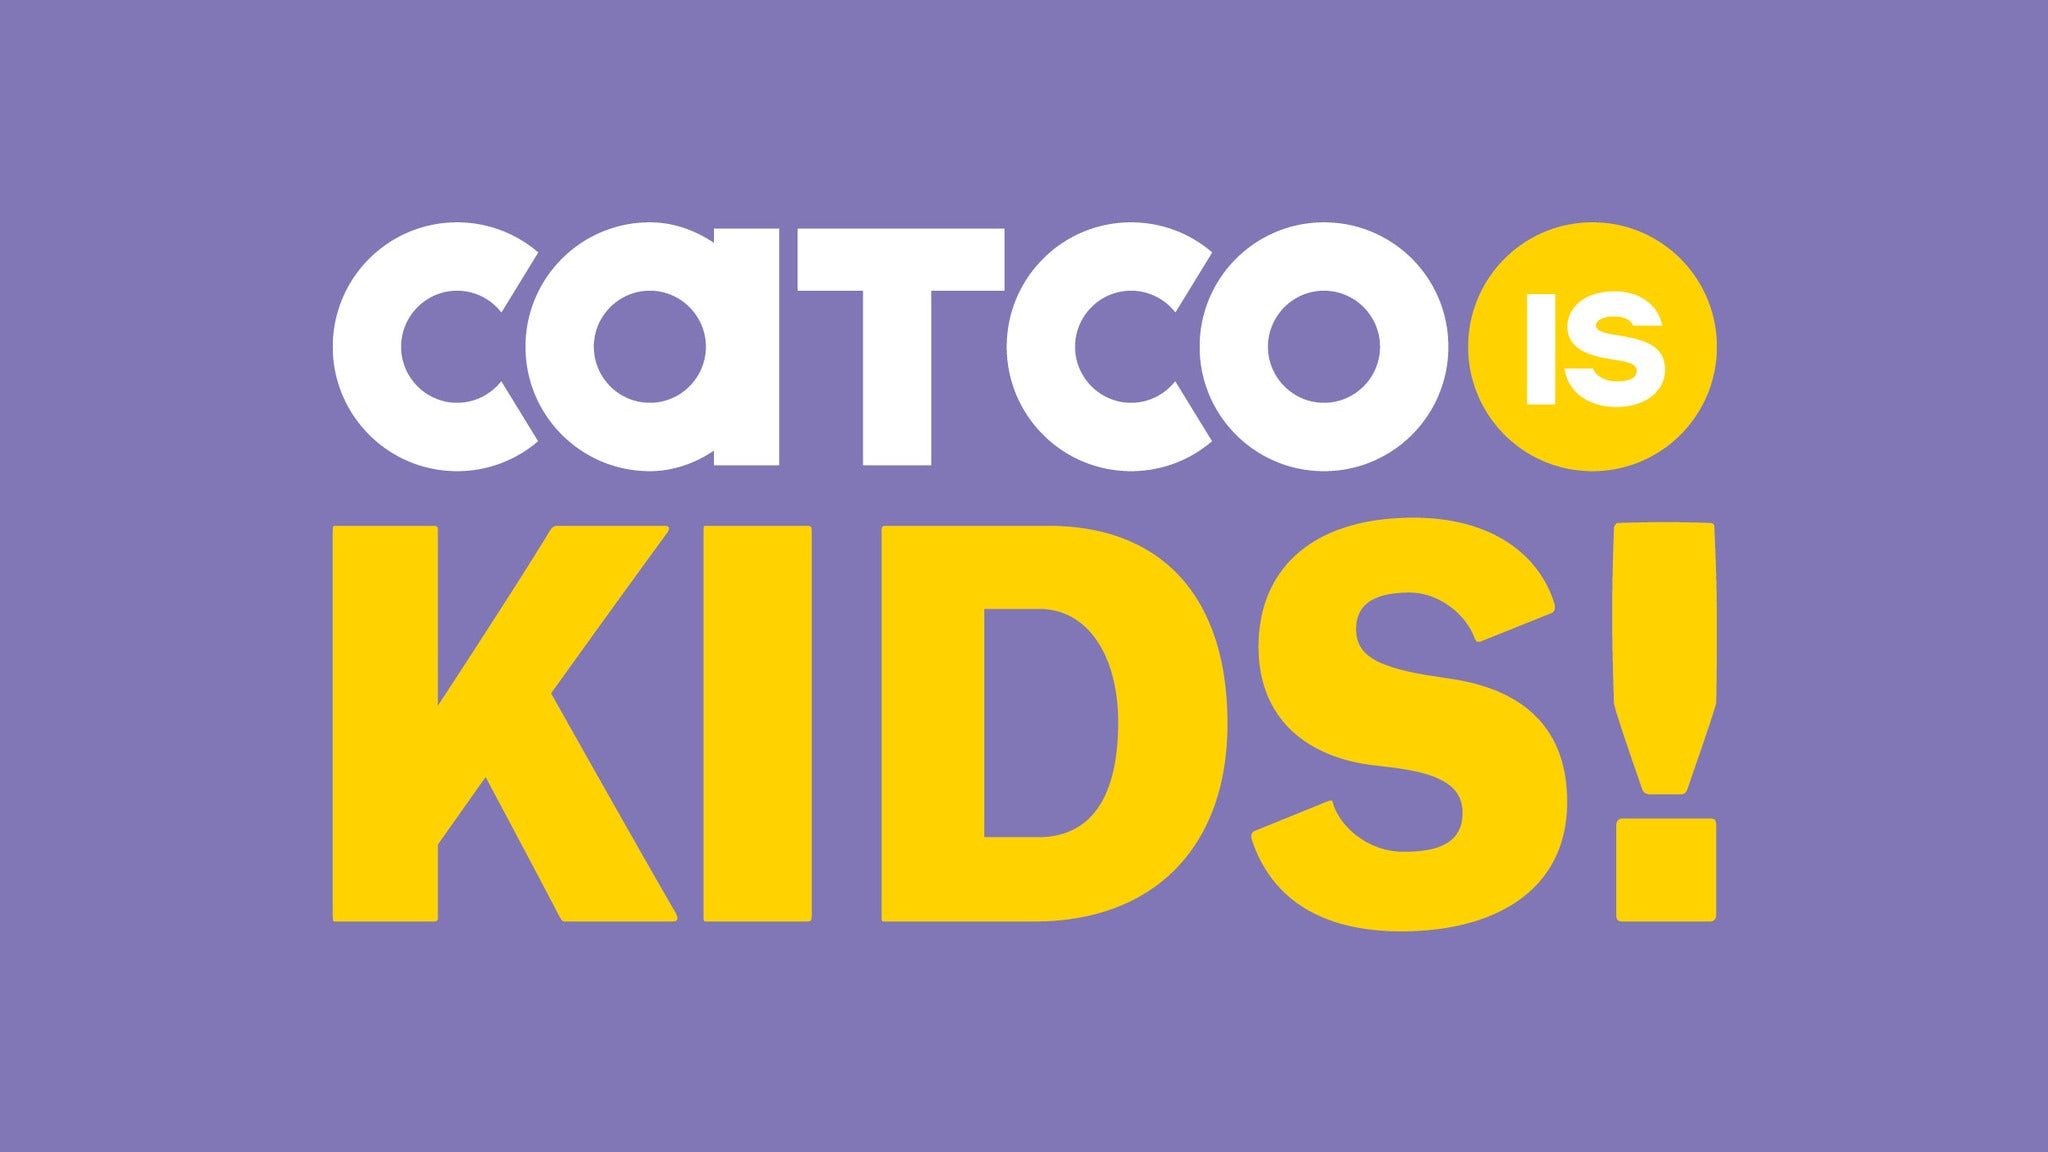 Catco Is Kids - Anne Of Green Gables